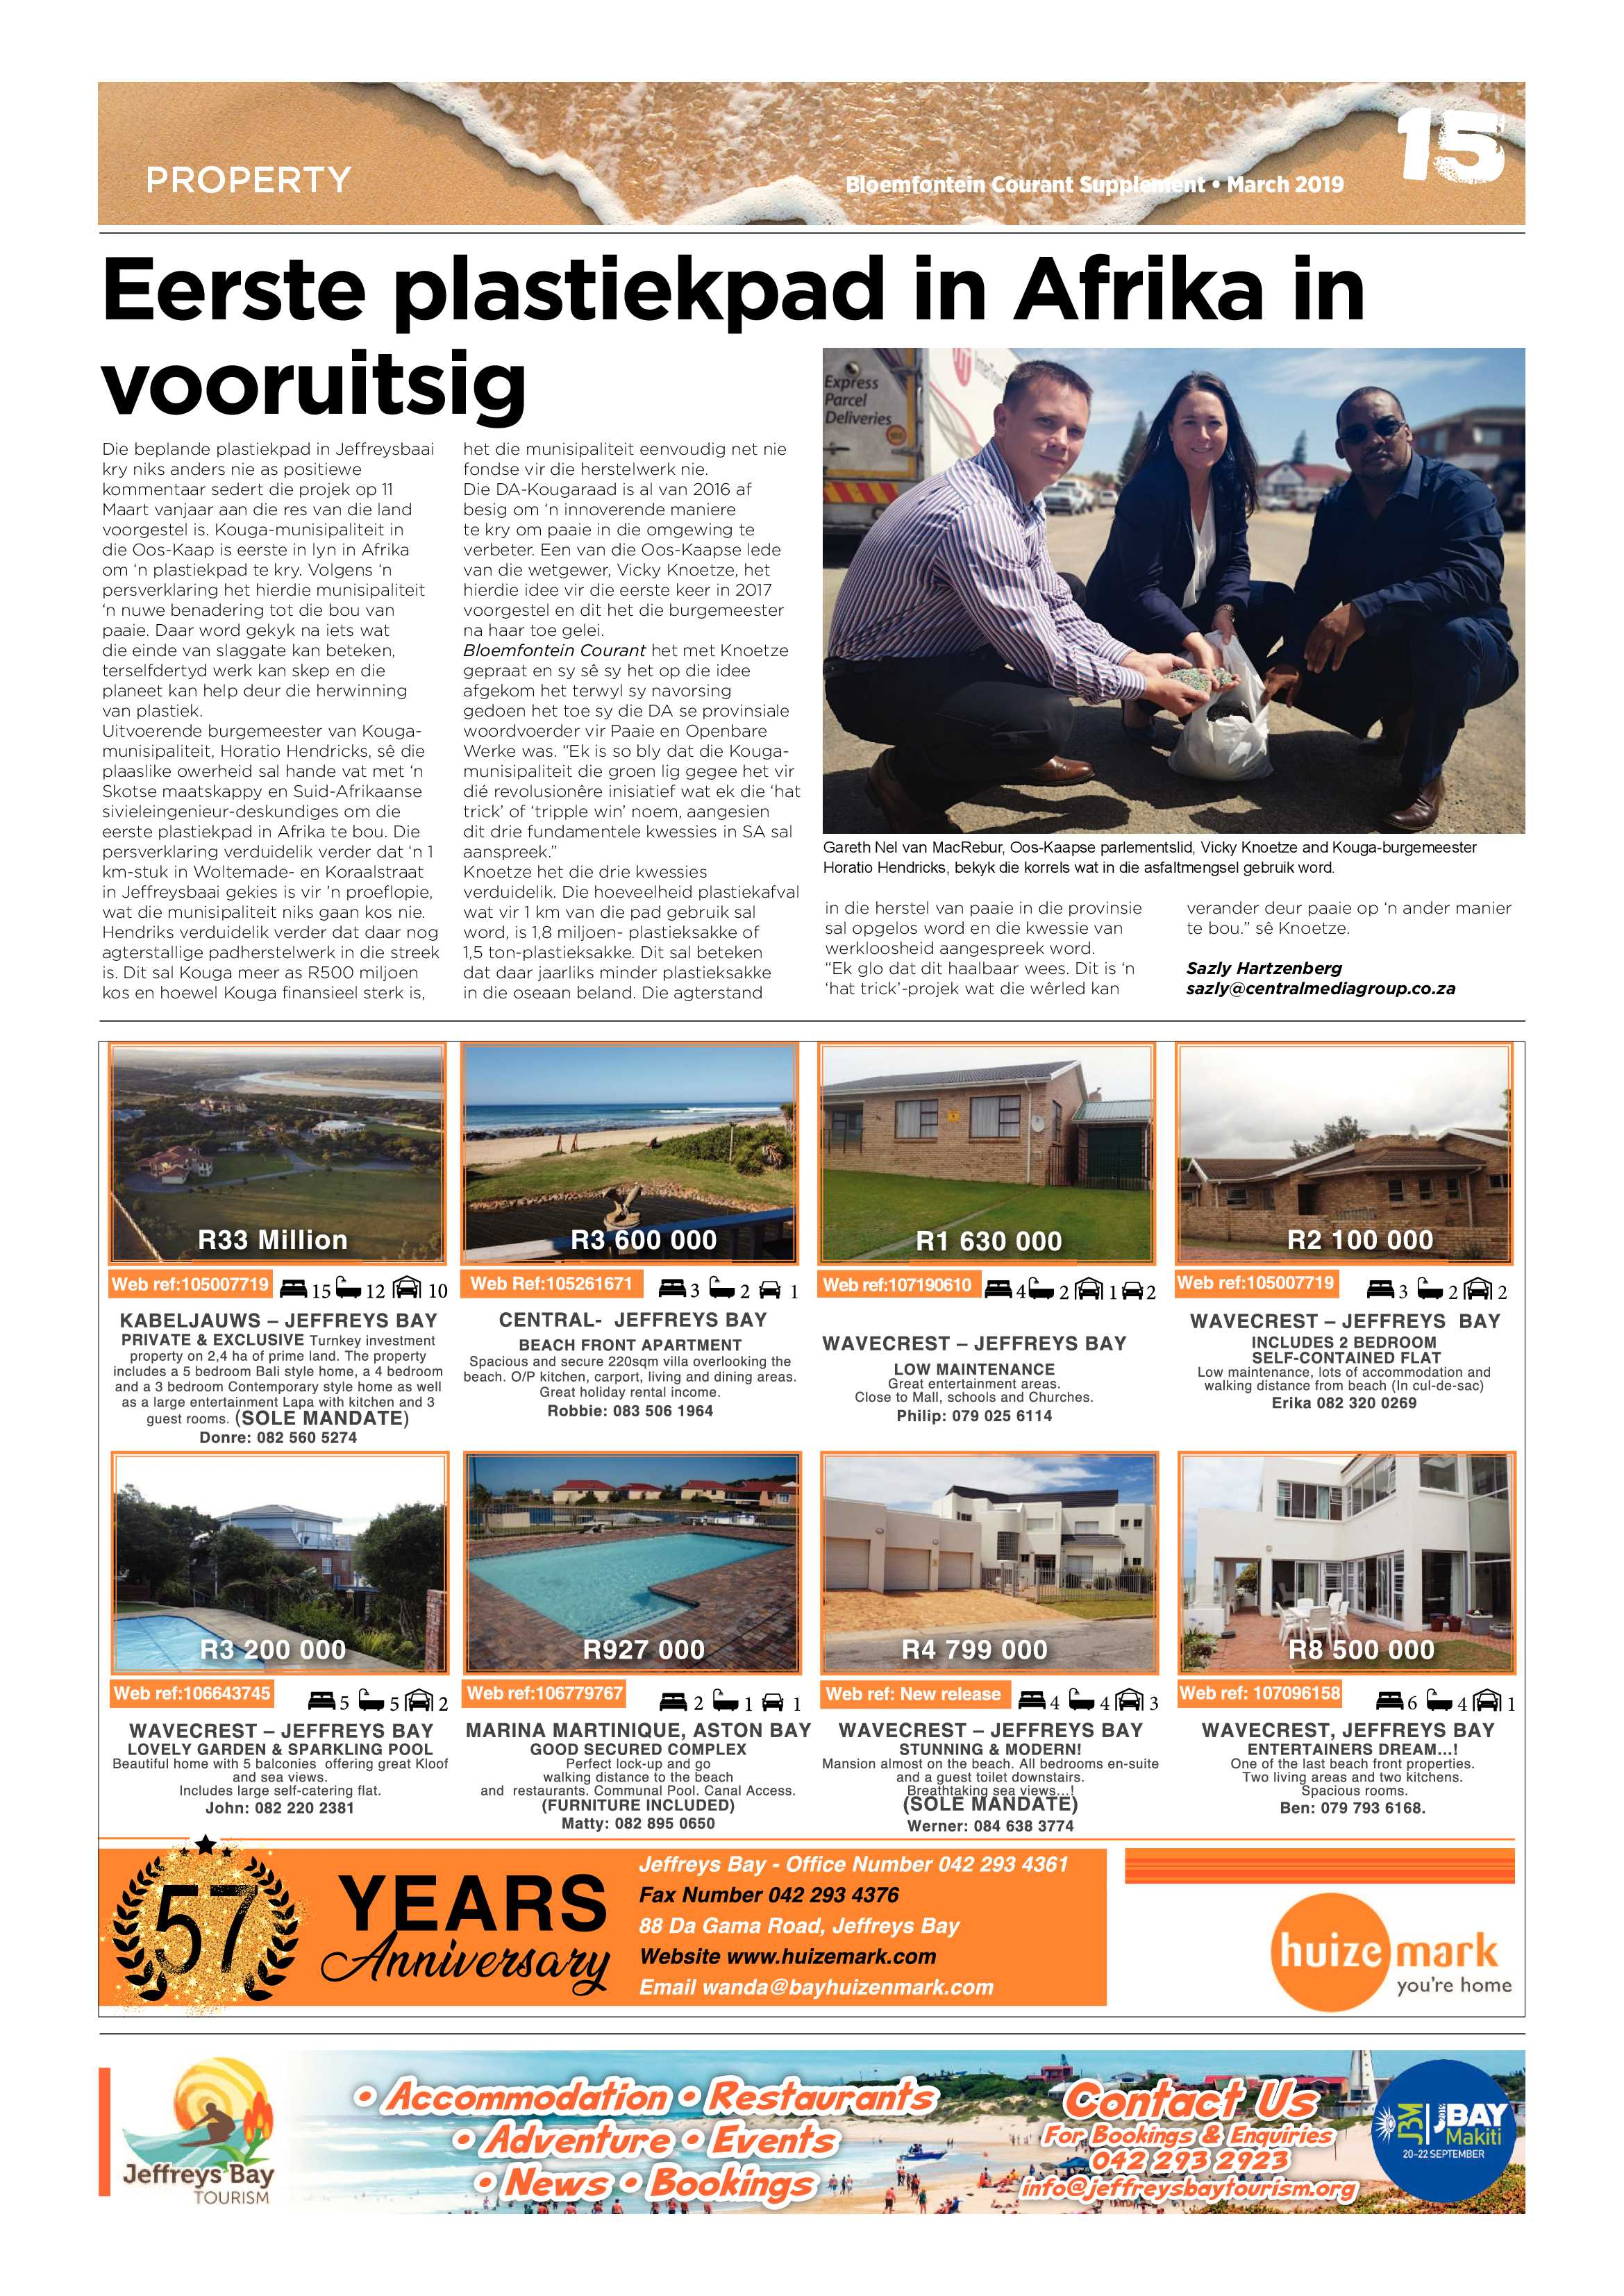 jeffreys-bay-courant-feature-28-march-2019-epapers-page-15